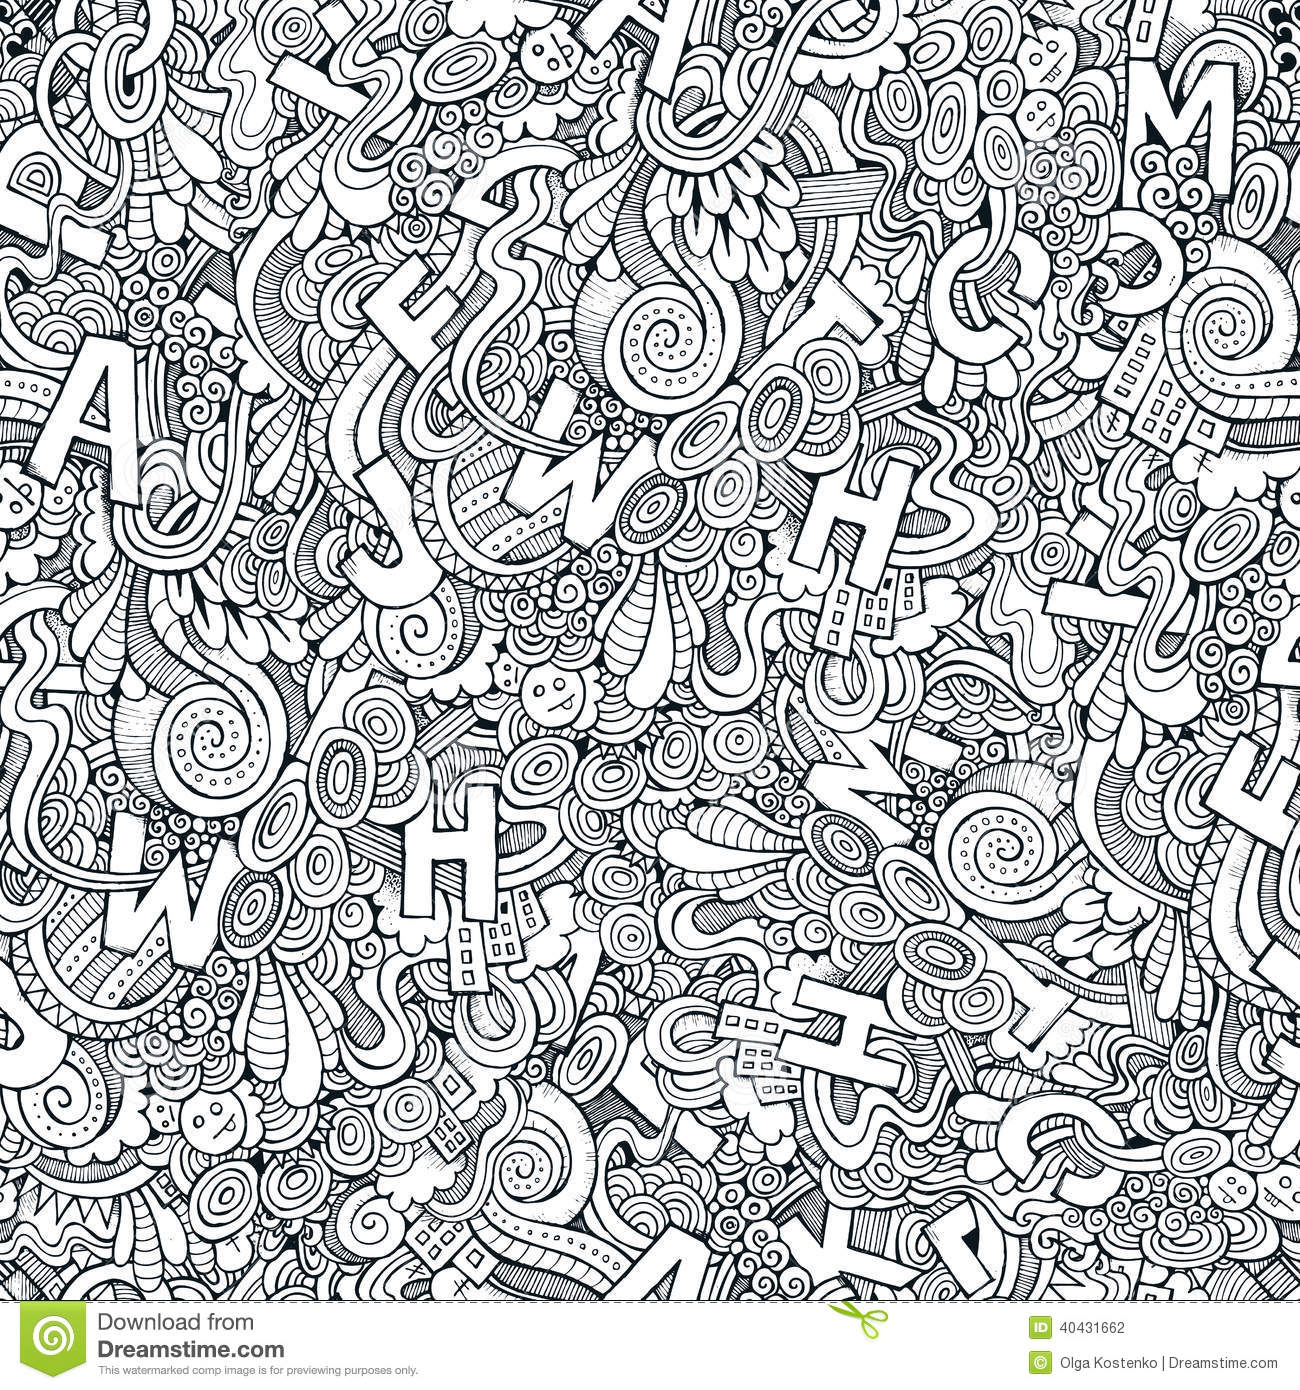 Letters Abstract Decorative Doodles Seamless Pattern Stock